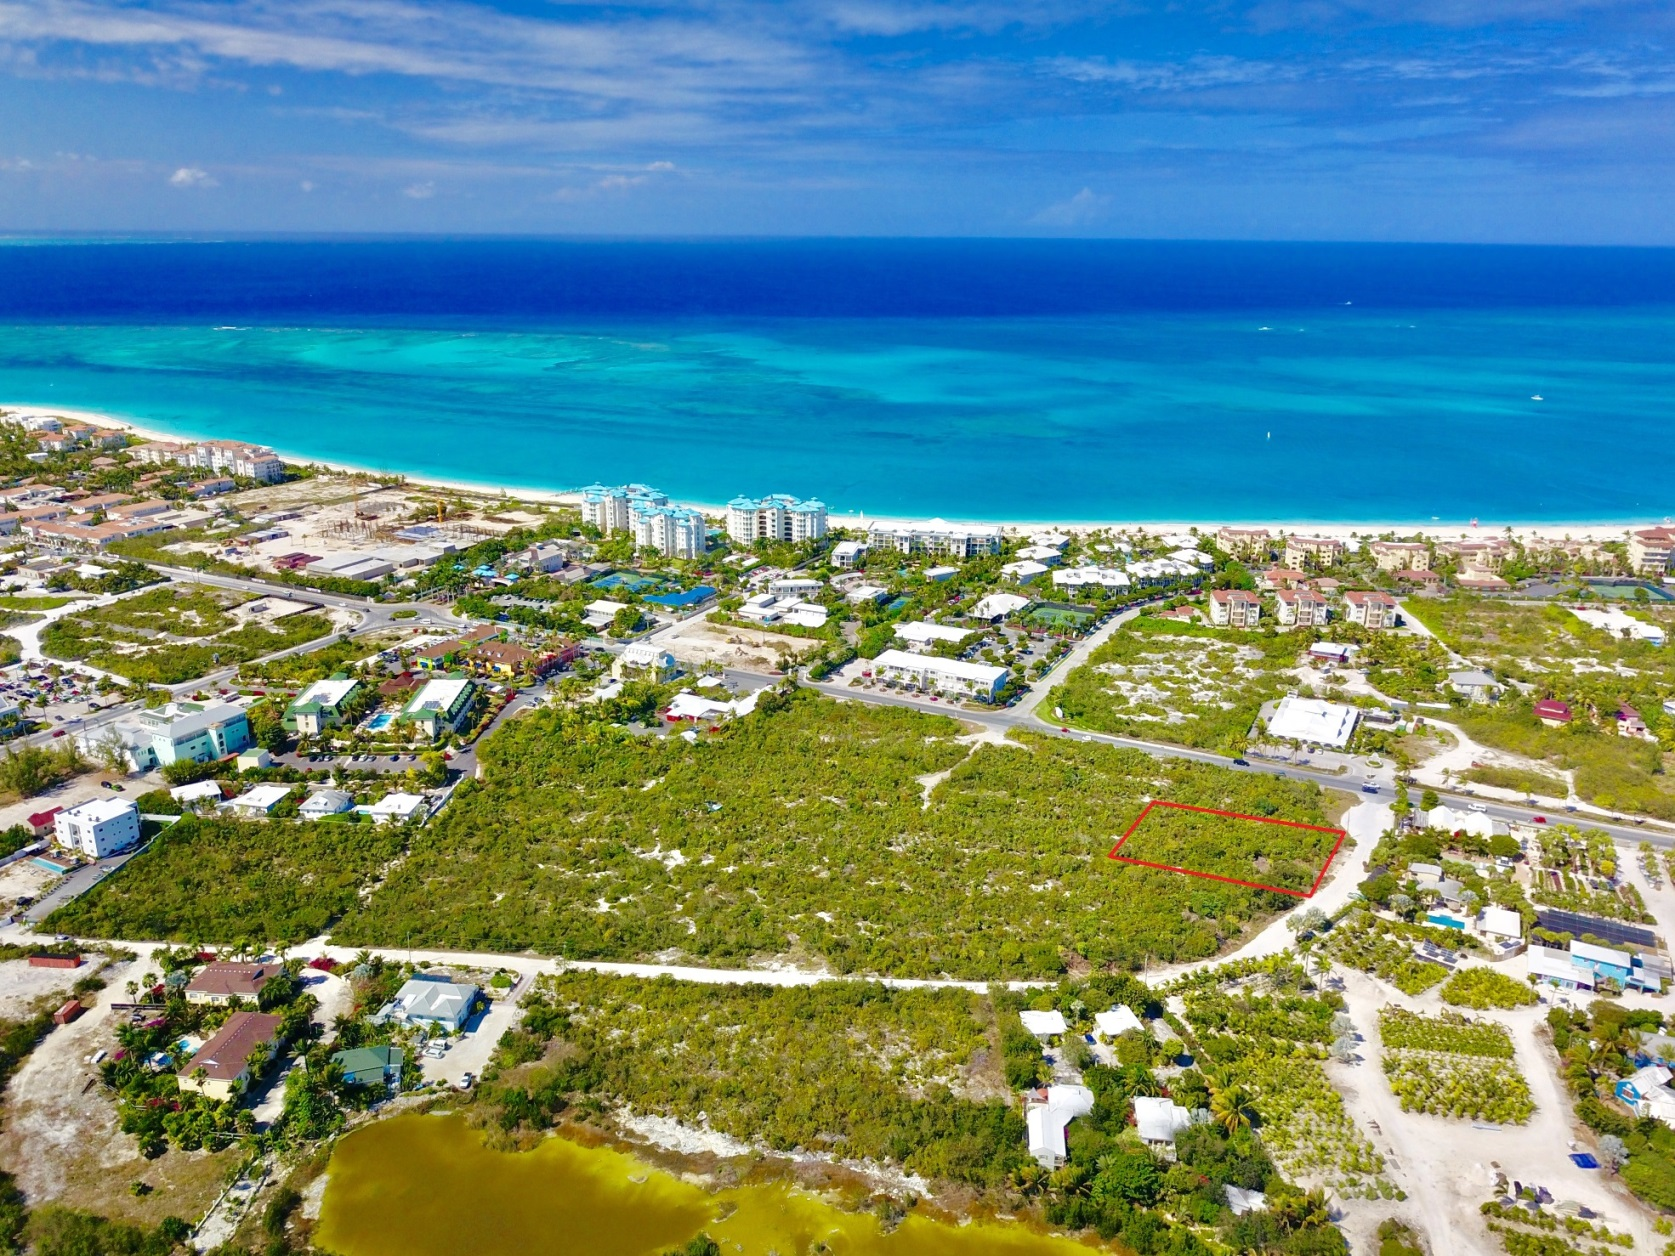 Land For Sale in Grace Bay - Lot 93 - Real Estate Turks and